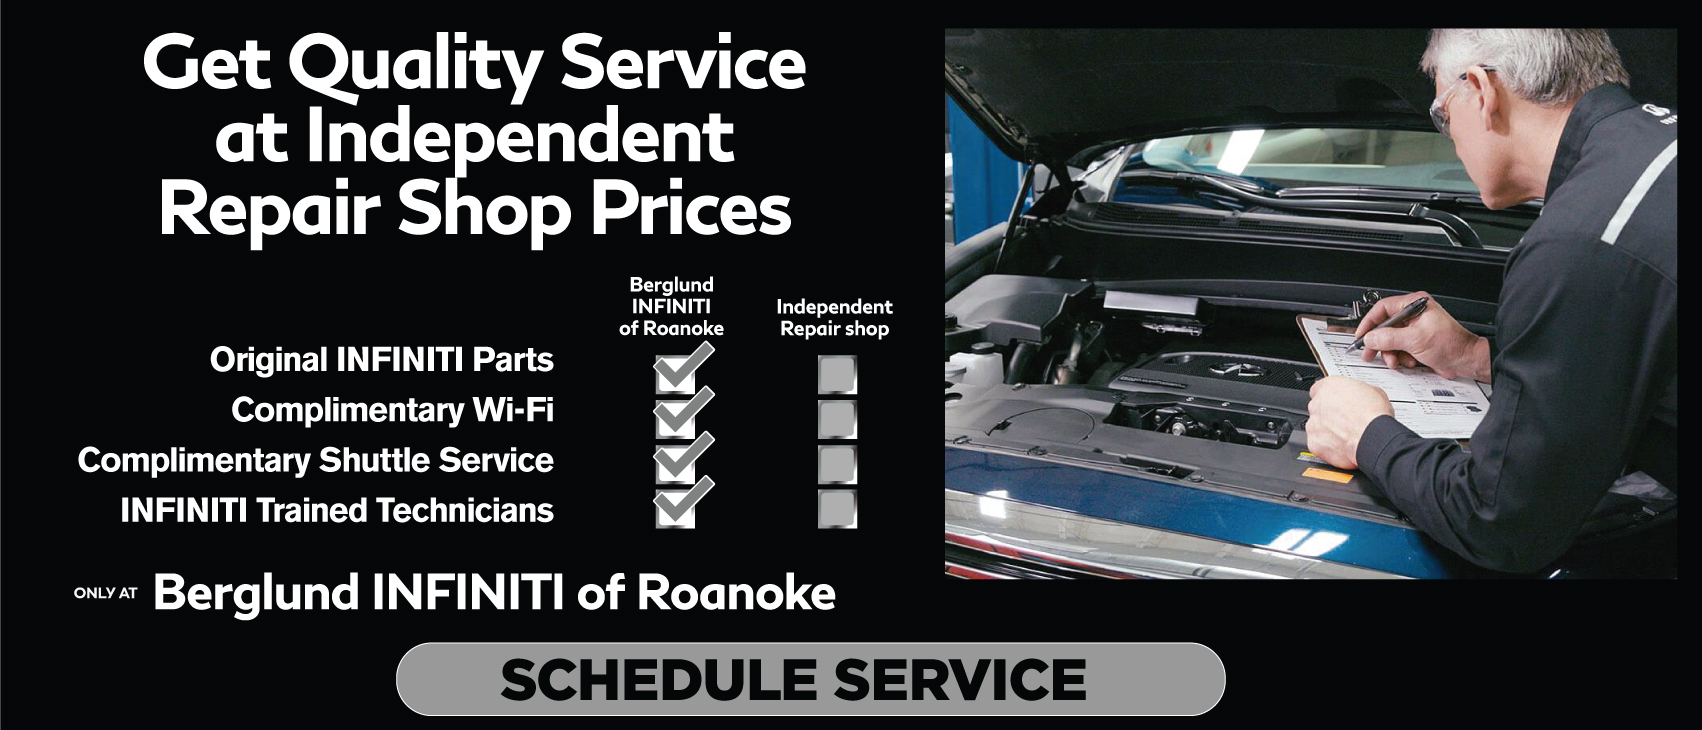 Get Quality Serviceat IndependentRepair Shop Prices. Click to Schedule Service.